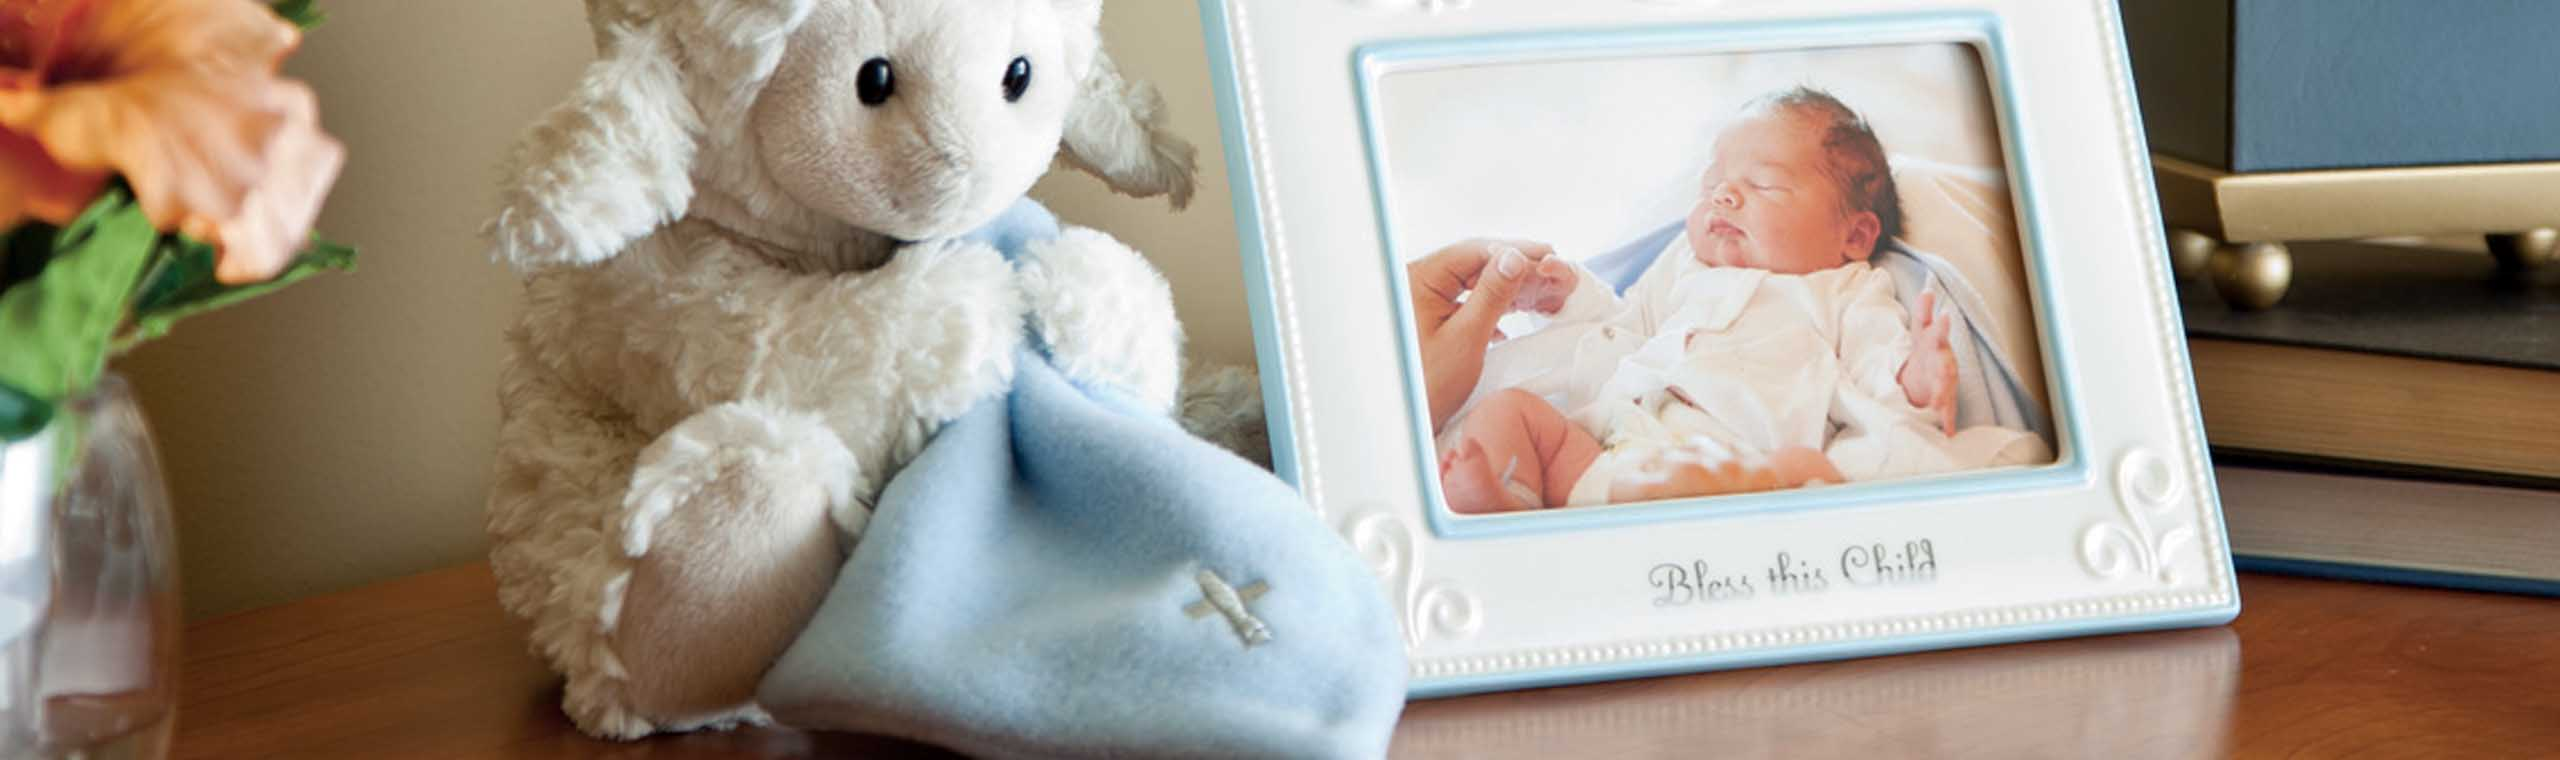 White lamb stuffed animal holding a blue blankie with embroidered cross next to white picture frame of baby